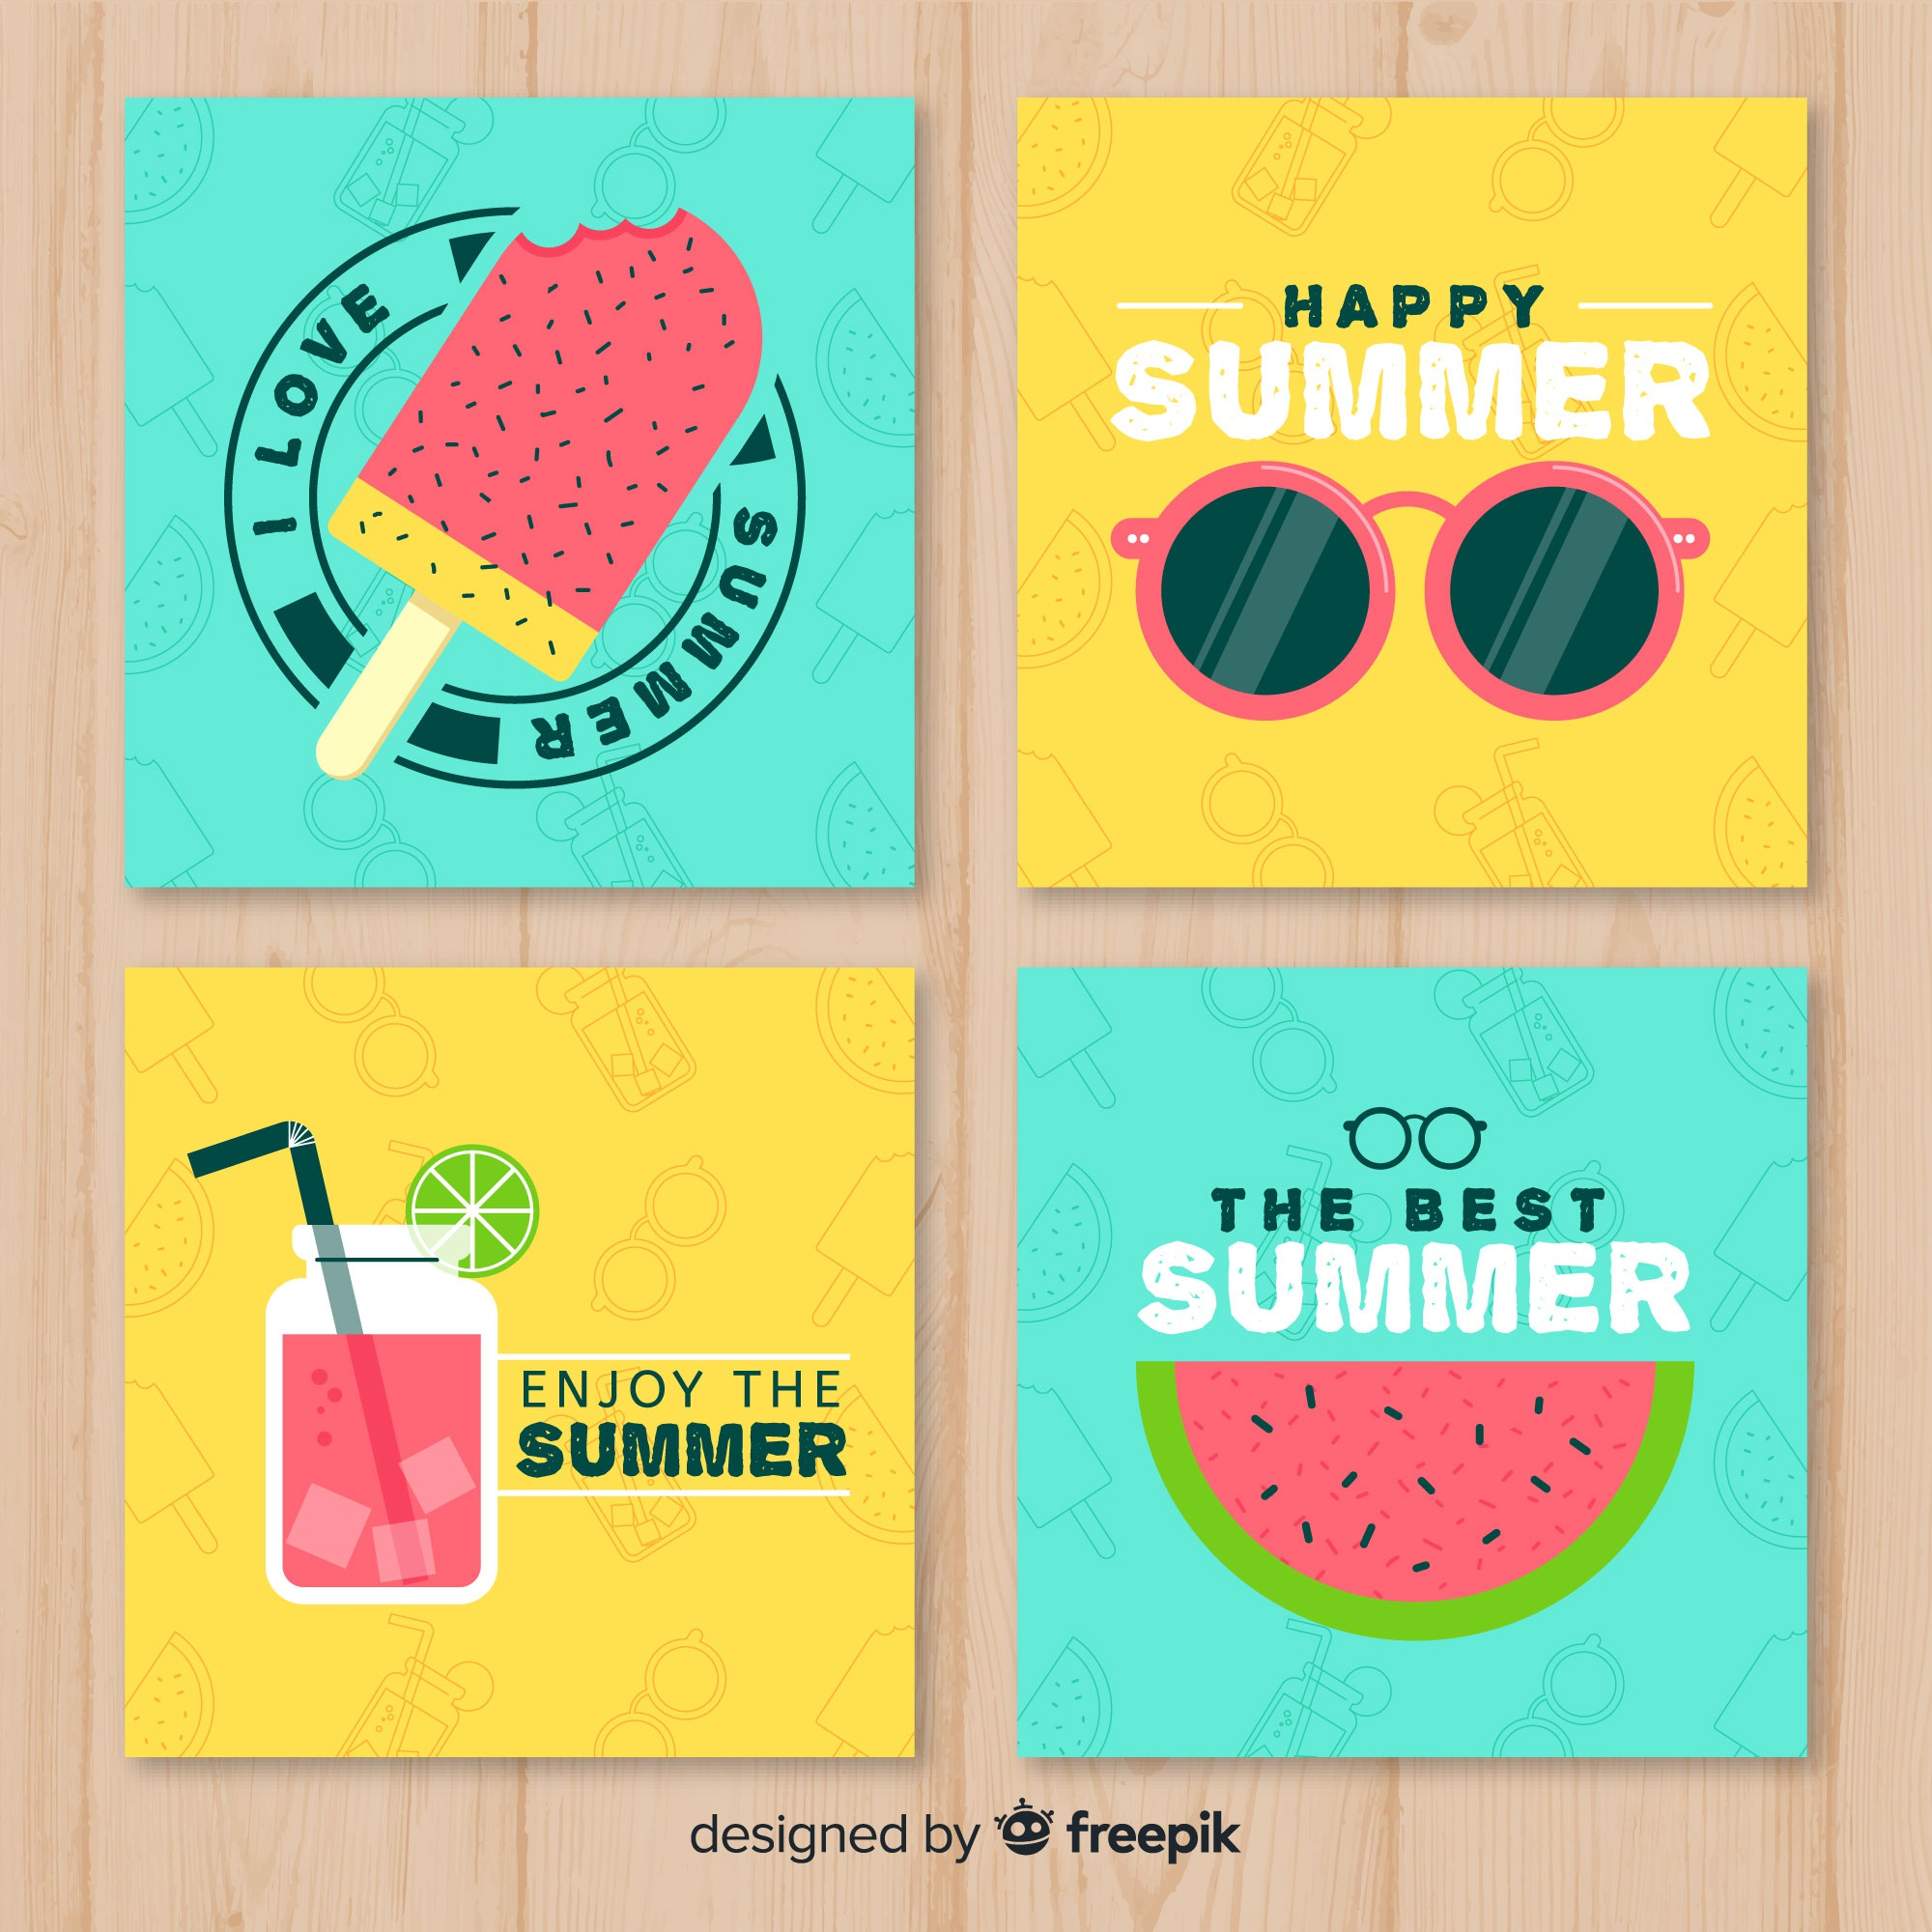 Lovely set of summer card templates